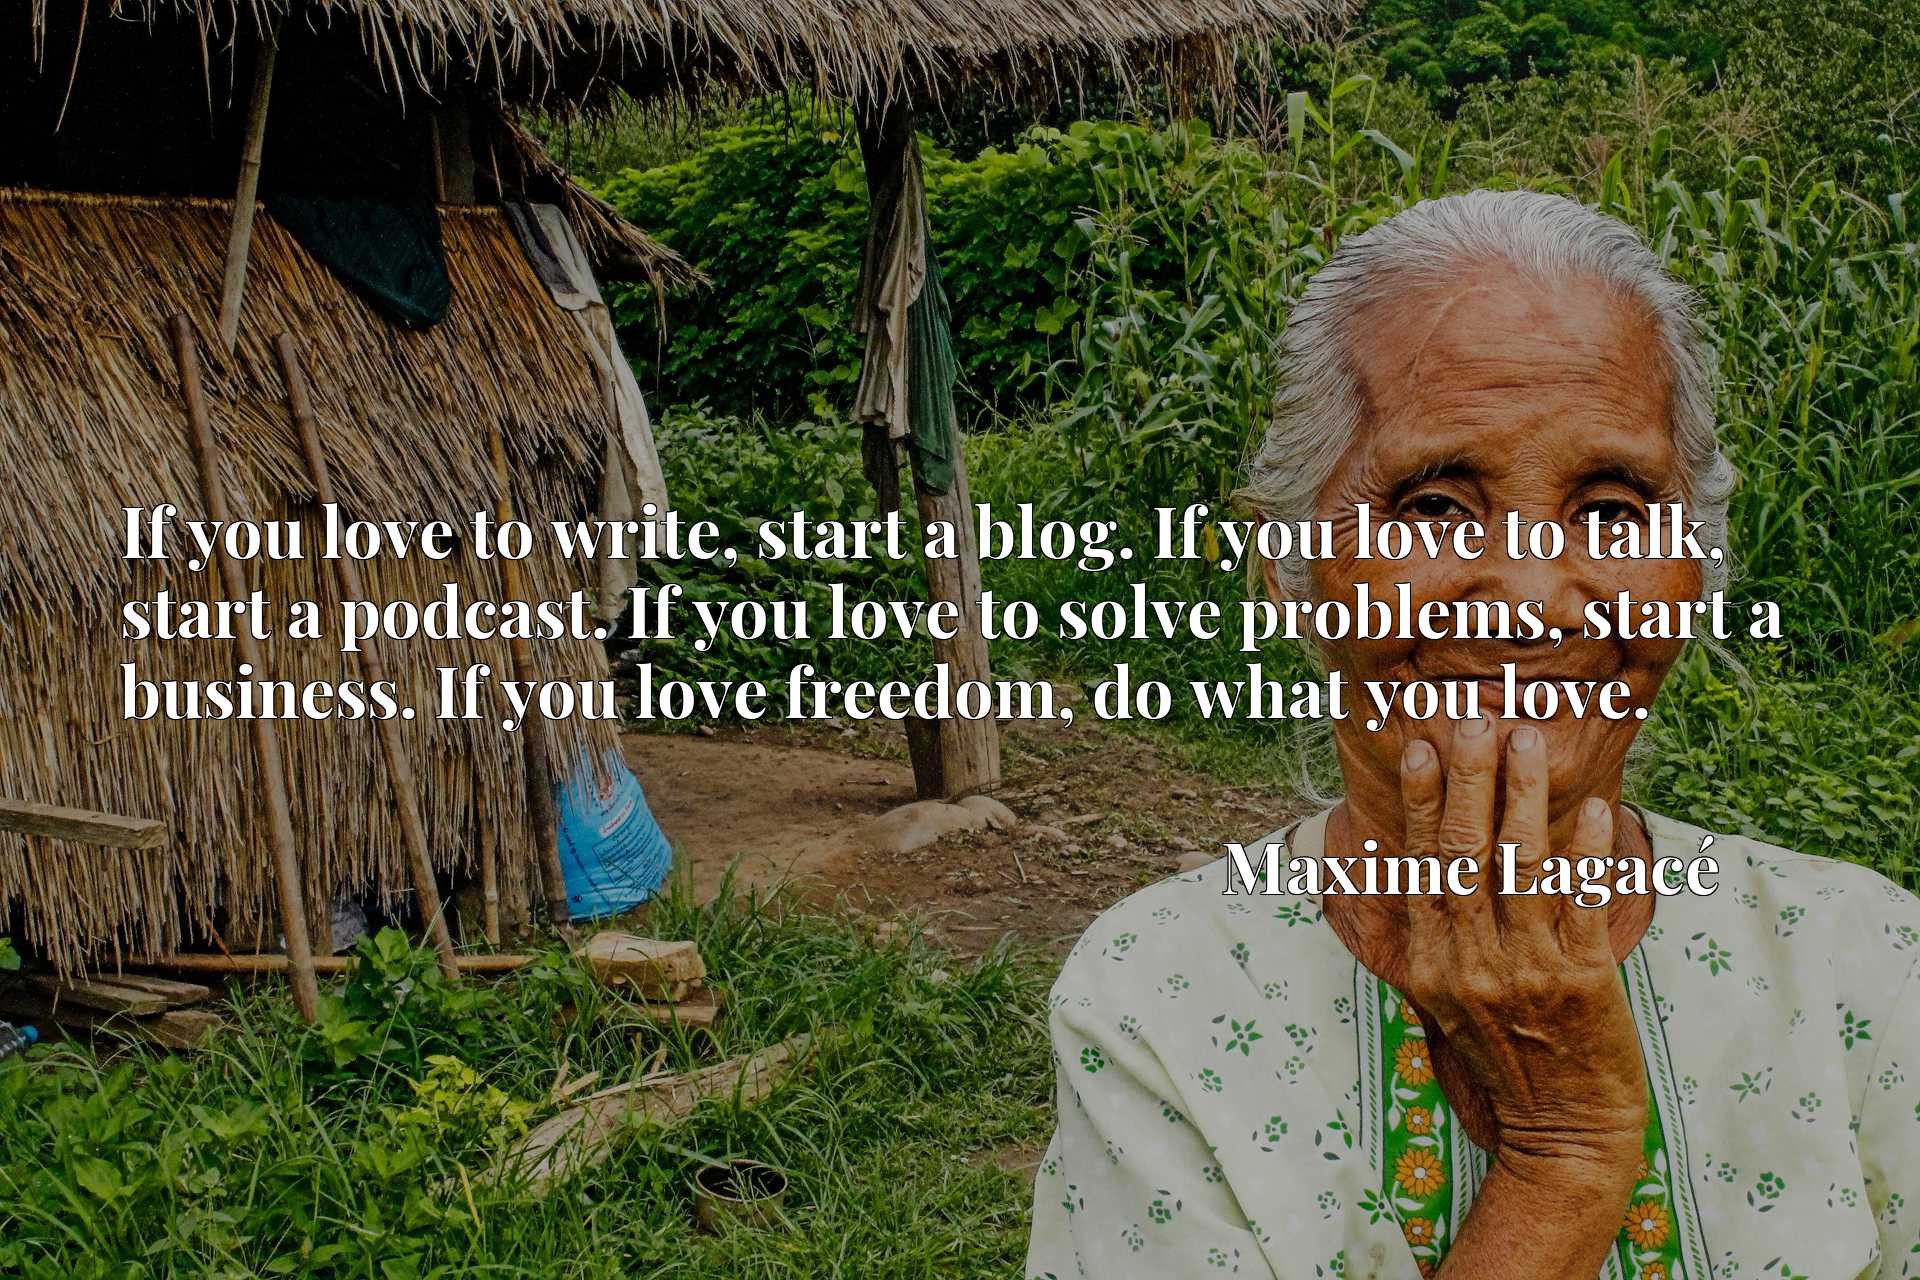 If you love to write, start a blog. If you love to talk, start a podcast. If you love to solve problems, start a business. If you love freedom, do what you love.